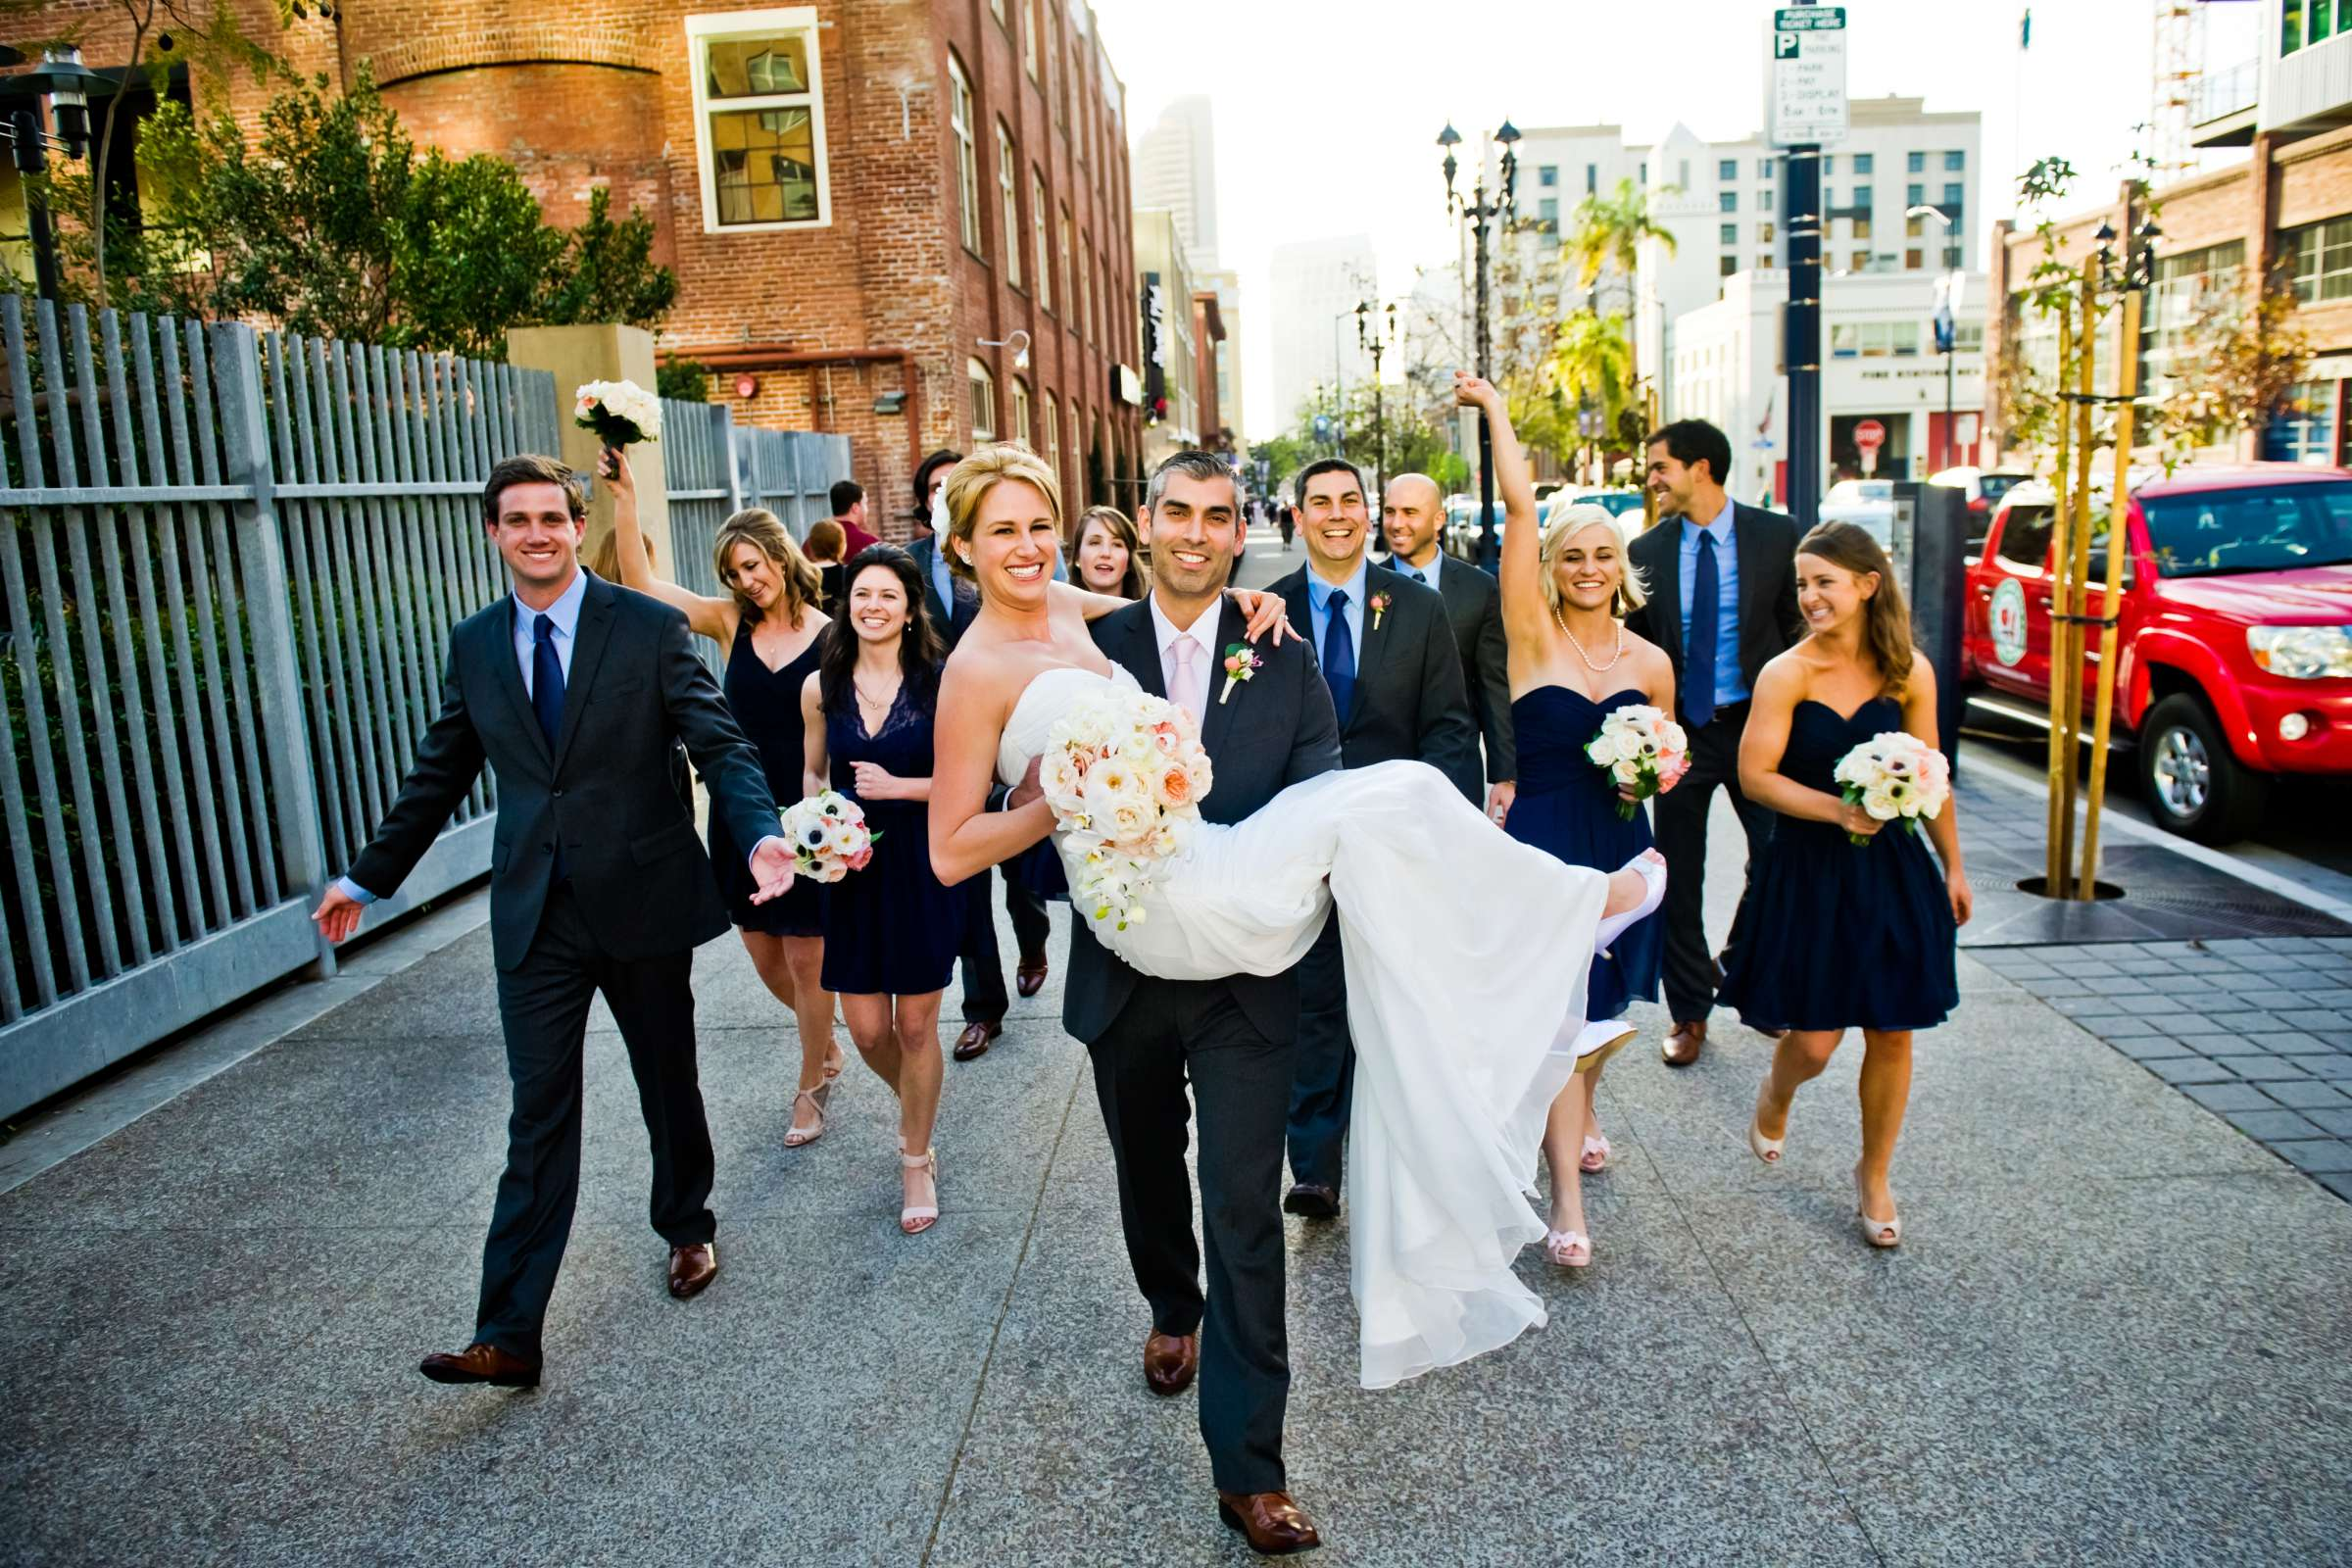 Urban Downtown at Ultimate Skybox Wedding, Chelsea and Frank Wedding Photo #46 by True Photography